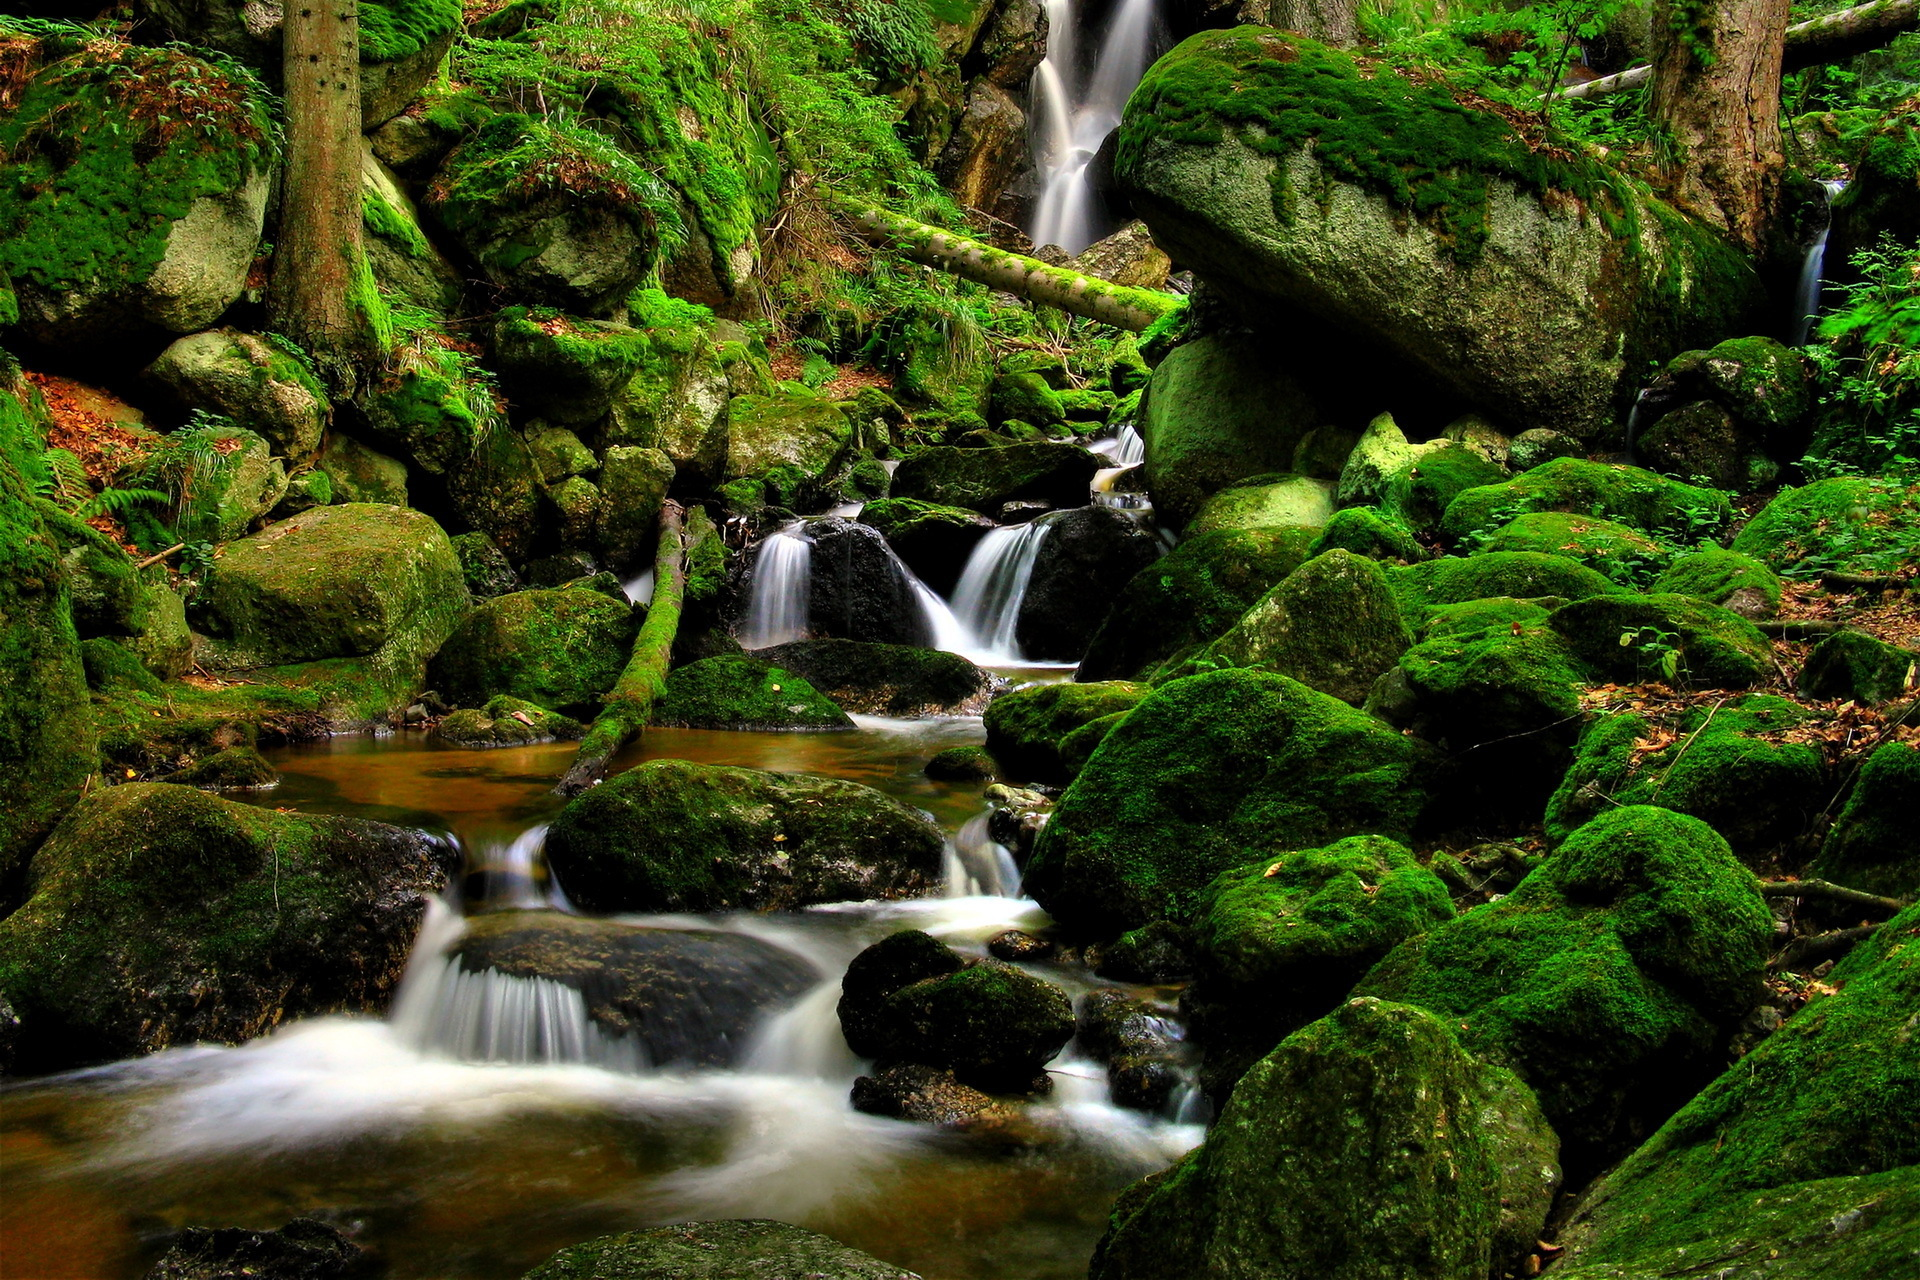 forest river waterfall trees rocks nature